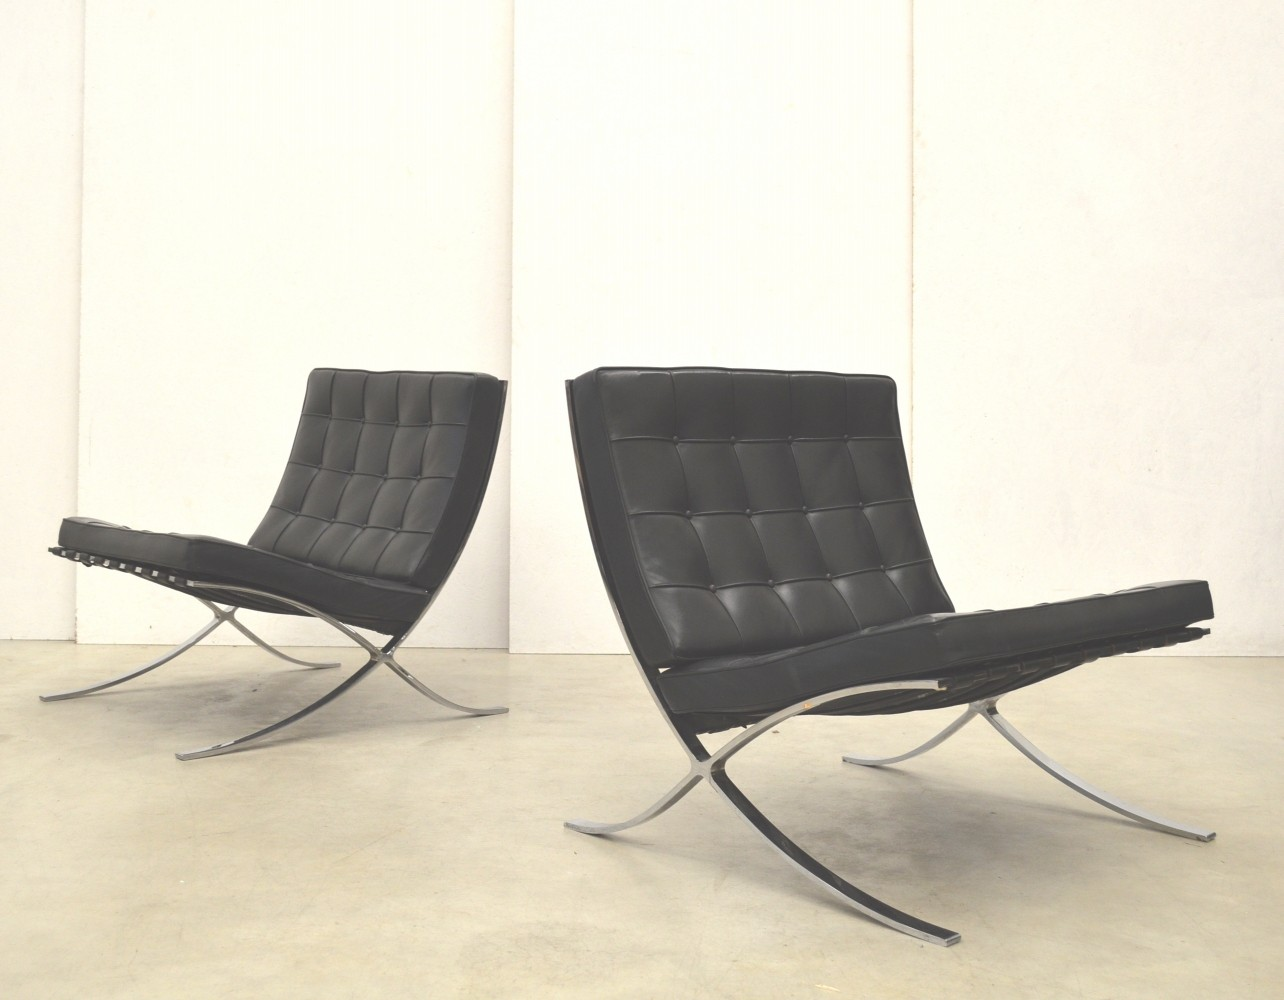 Barcelona Lounge Chair Pair Of Barcelona Lounge Chairs By Ludwig Mies Van Der